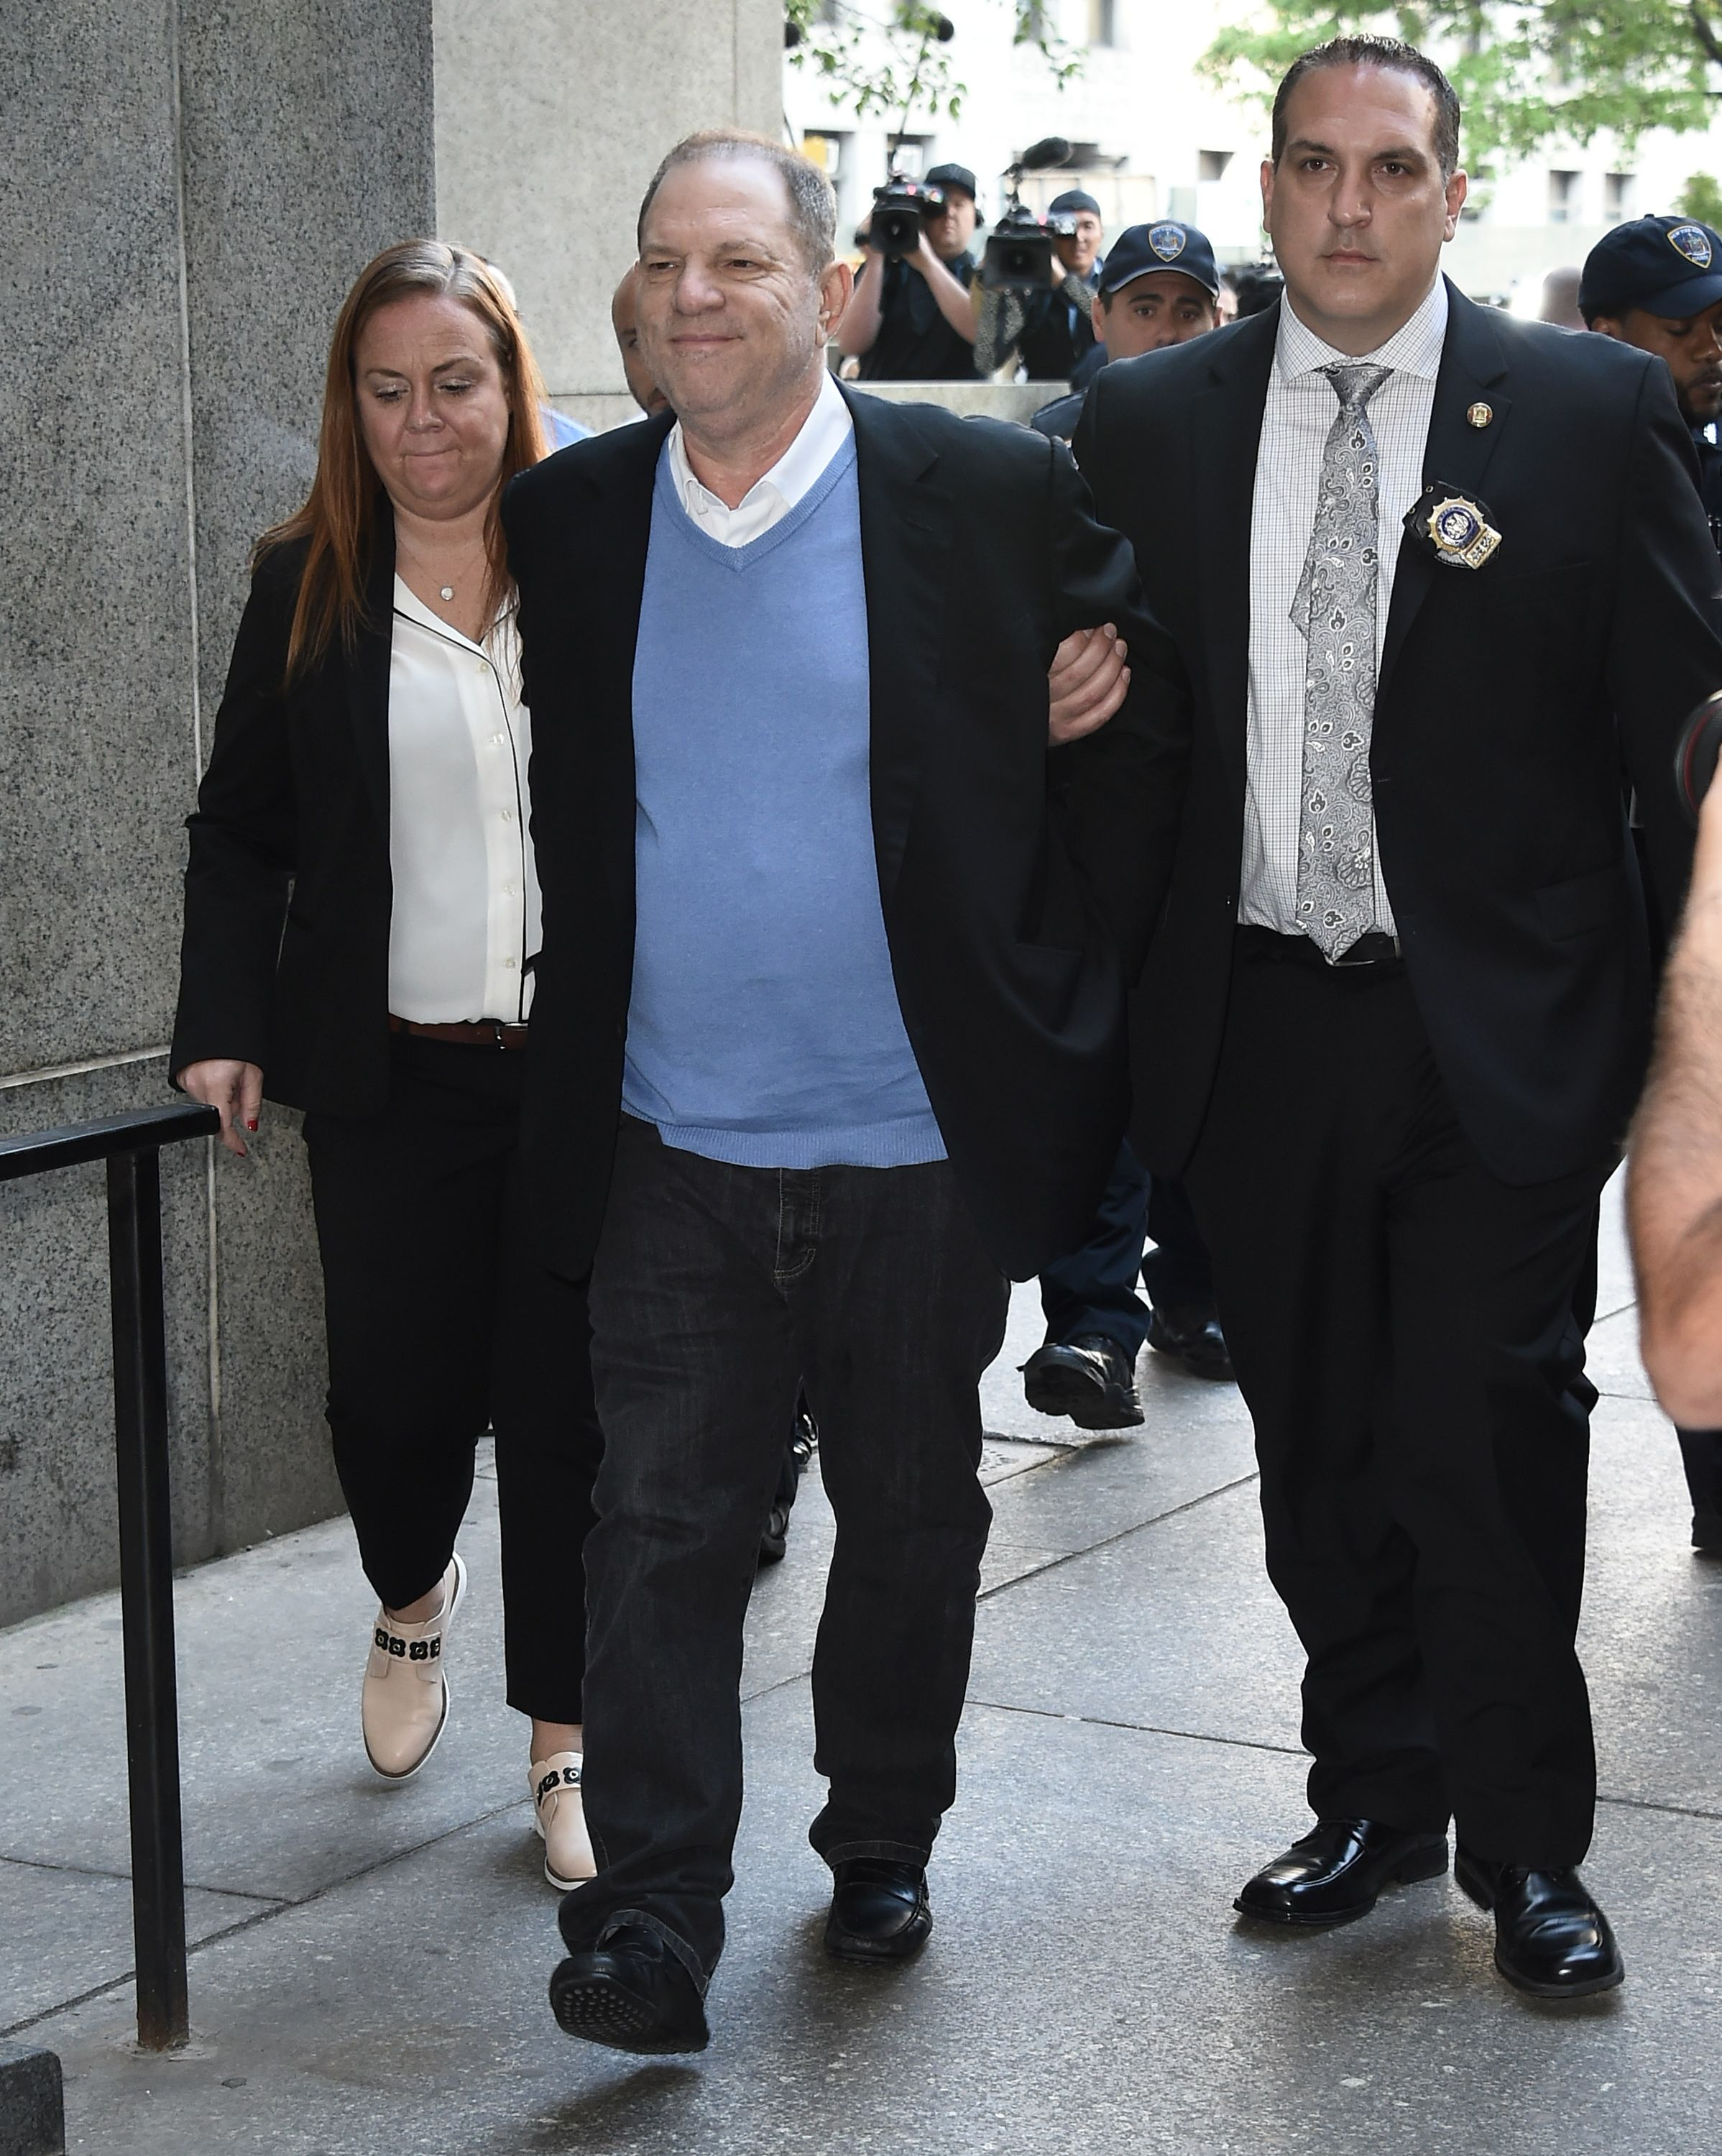 Harvey Weinstein arrives for arraignment on charges of rape and sexual misconduct on May 25, 2018 in New York City.